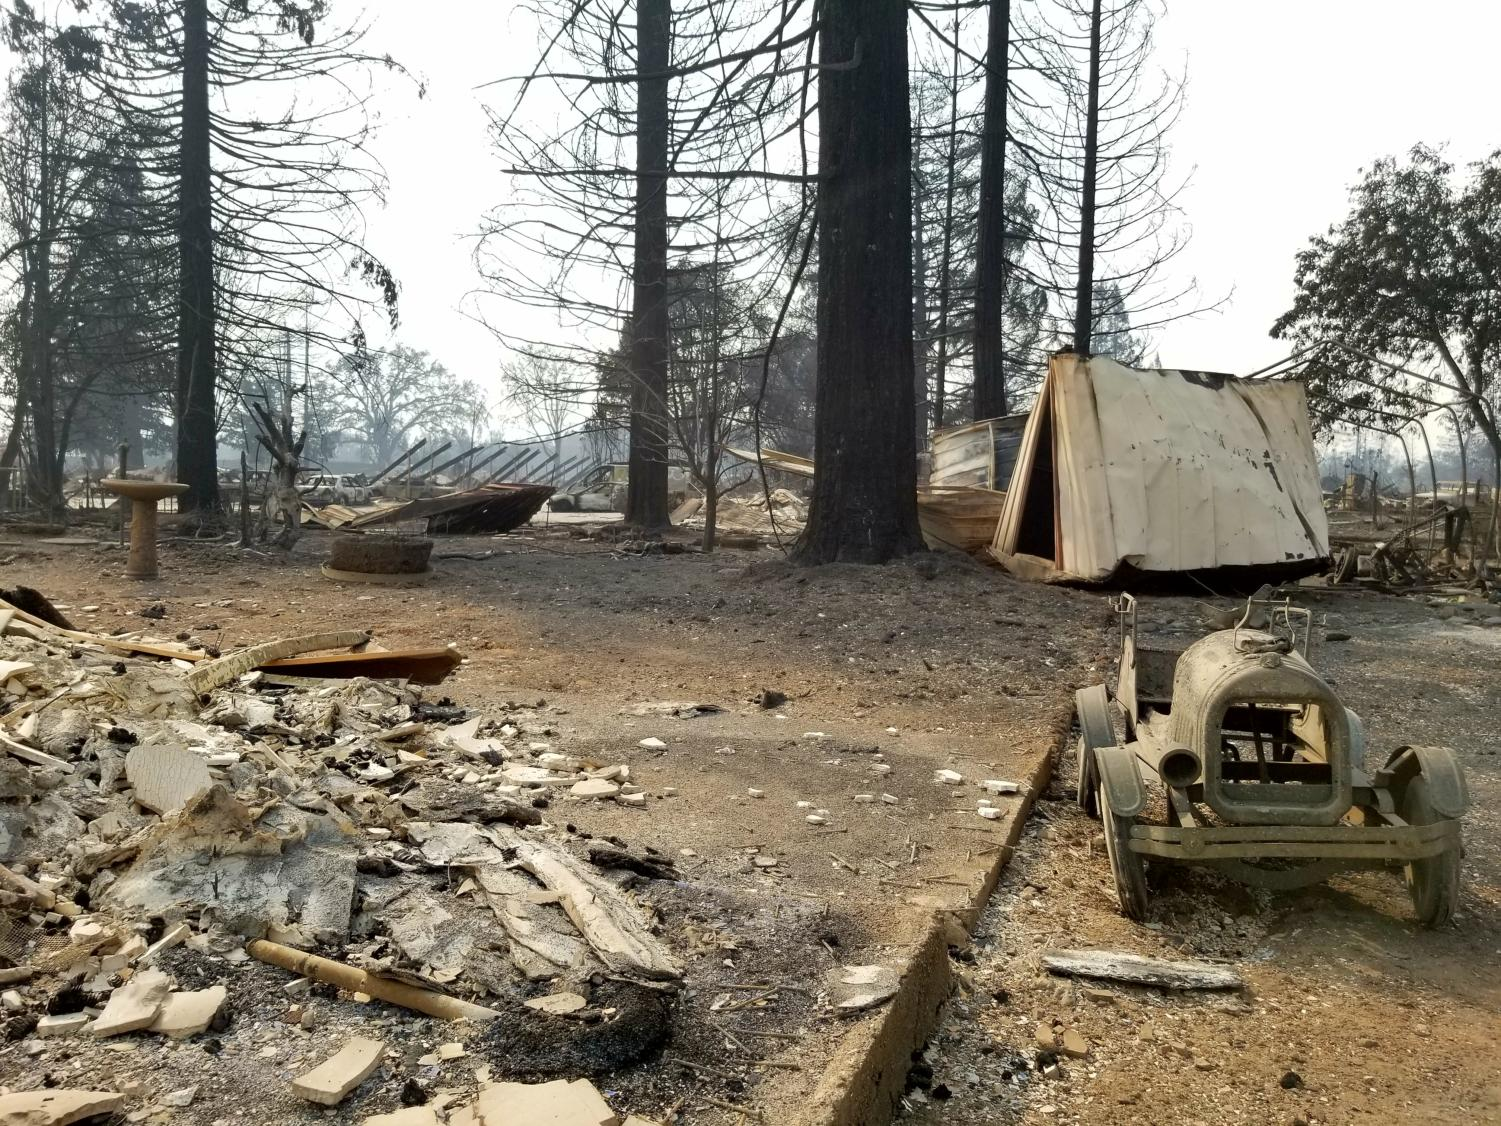 A fire-ravaged neighborhood in Santa Rosa.